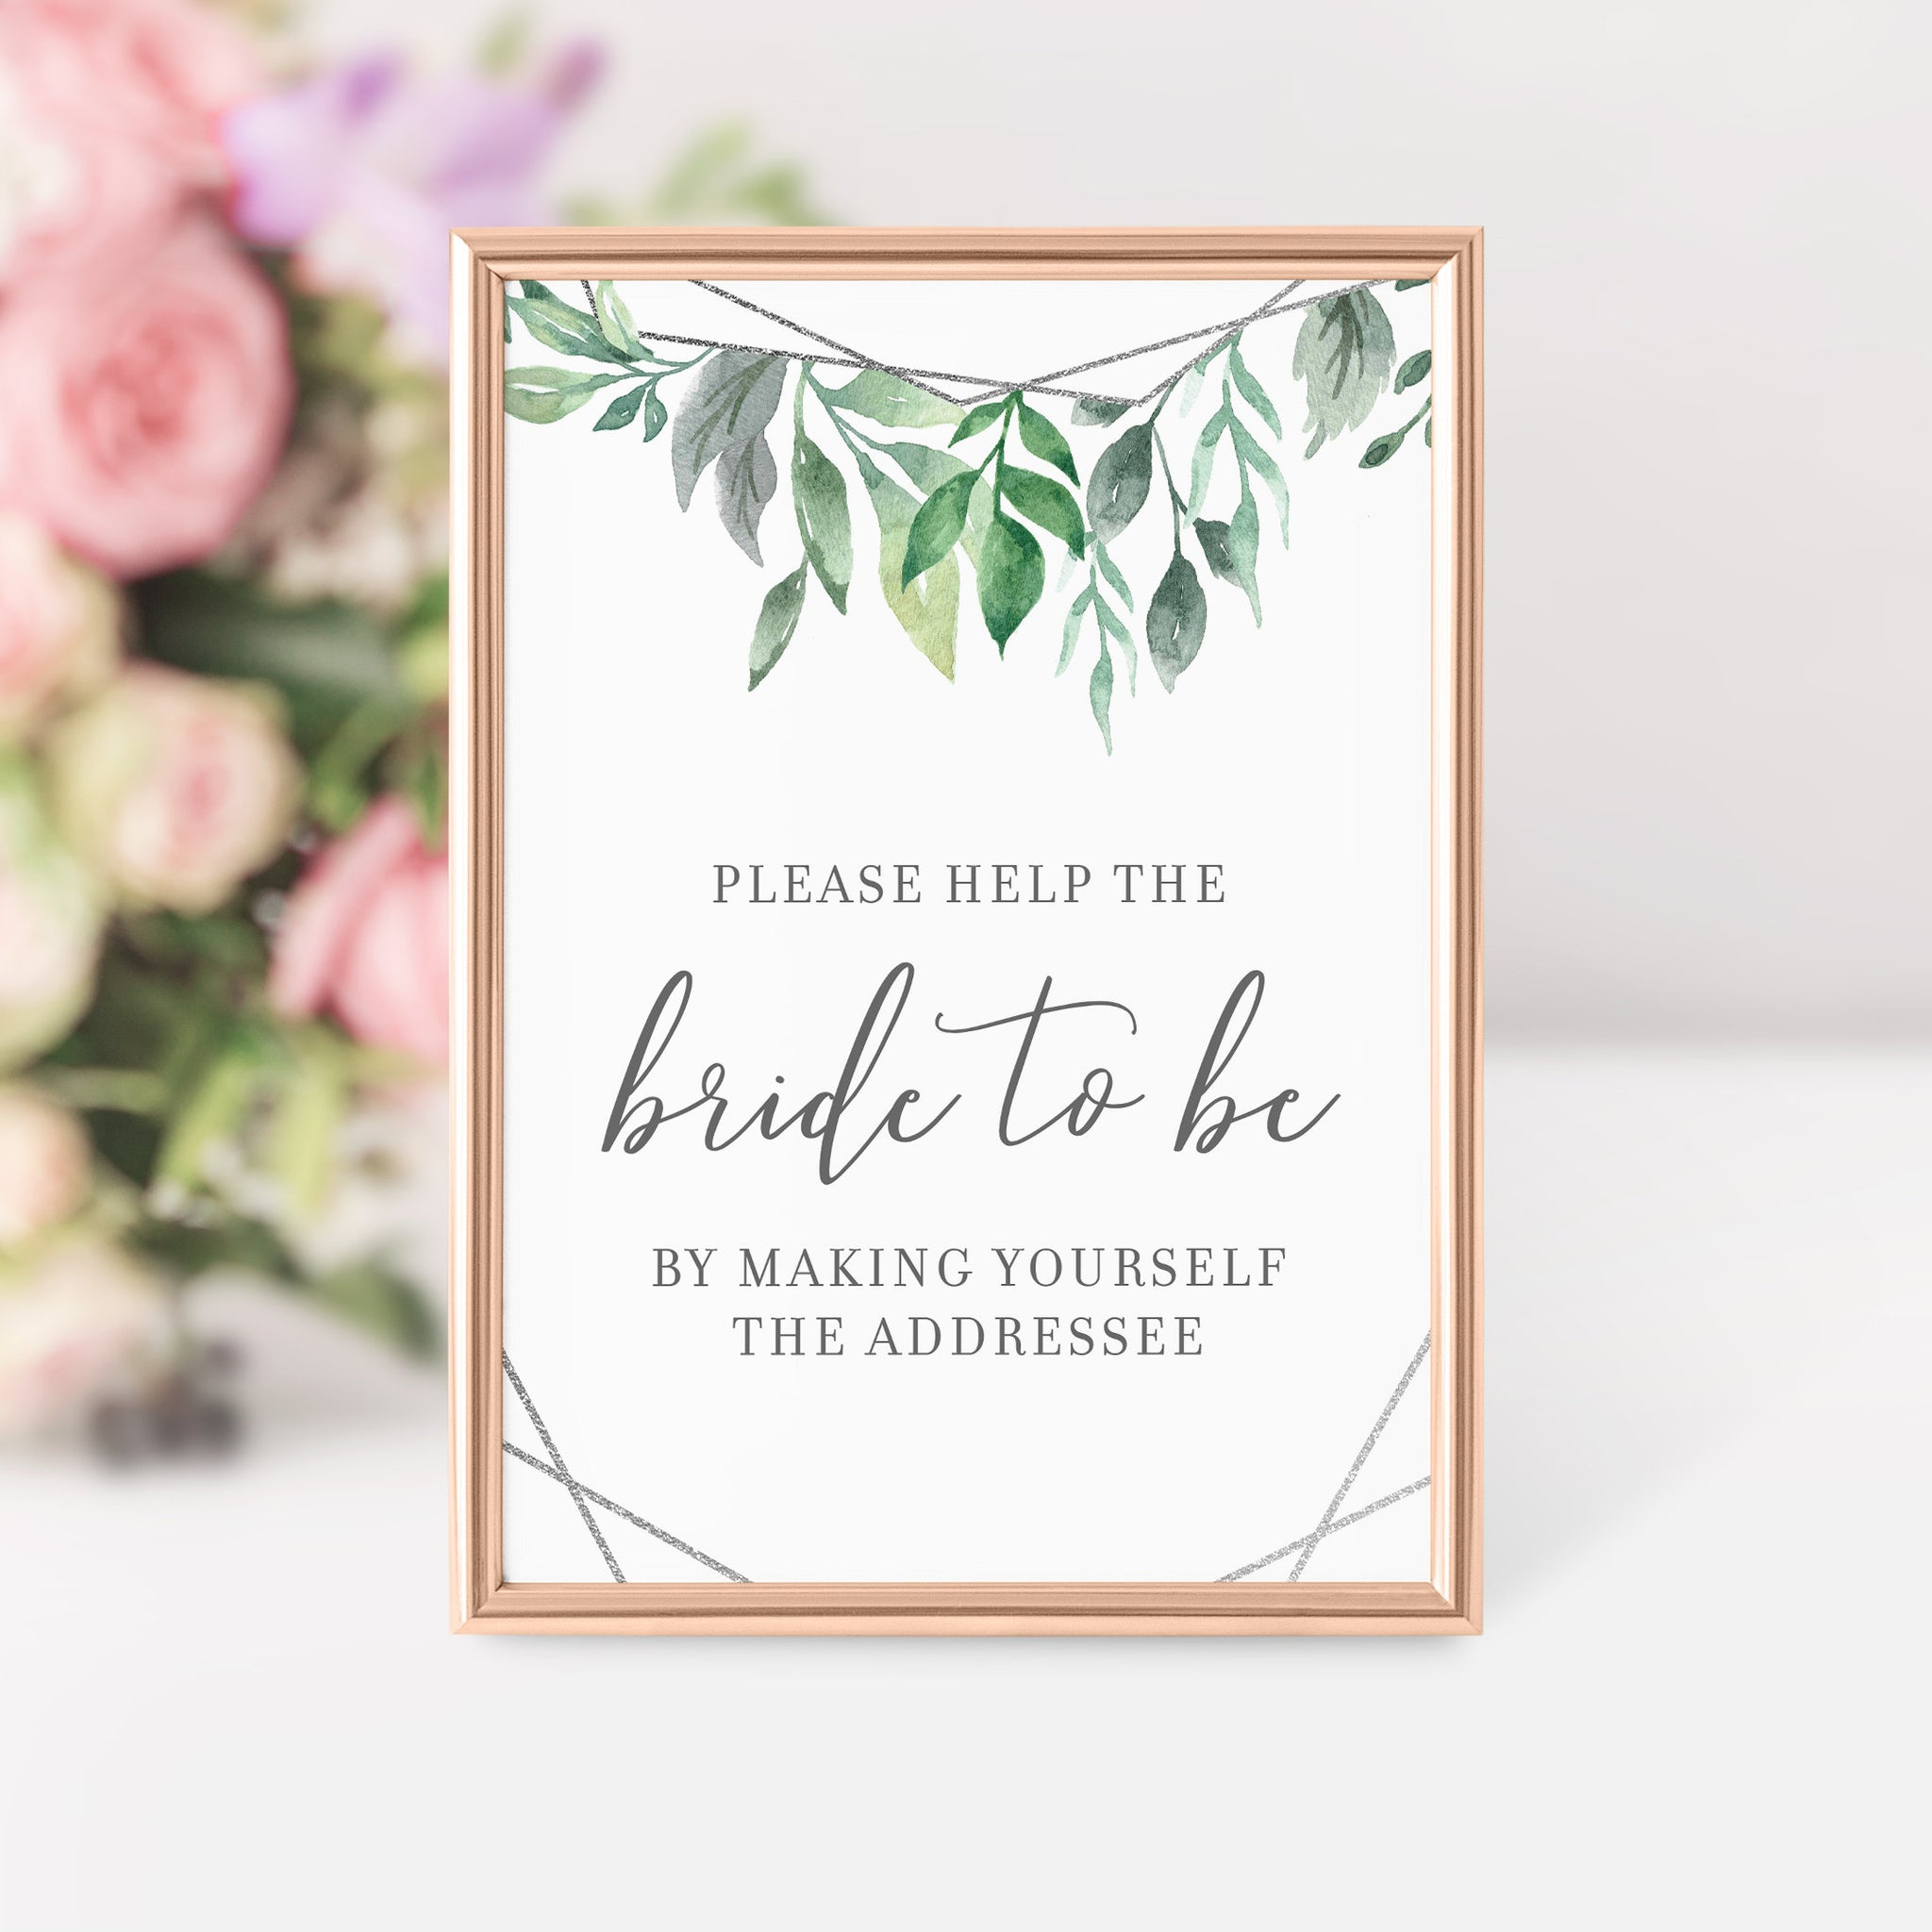 Geometric Silver Greenery Printable Bridal Shower Address an Envelope Sign INSTANT DOWNLOAD, Bridal Shower Decorations and Supplies - GFS100 - @PlumPolkaDot